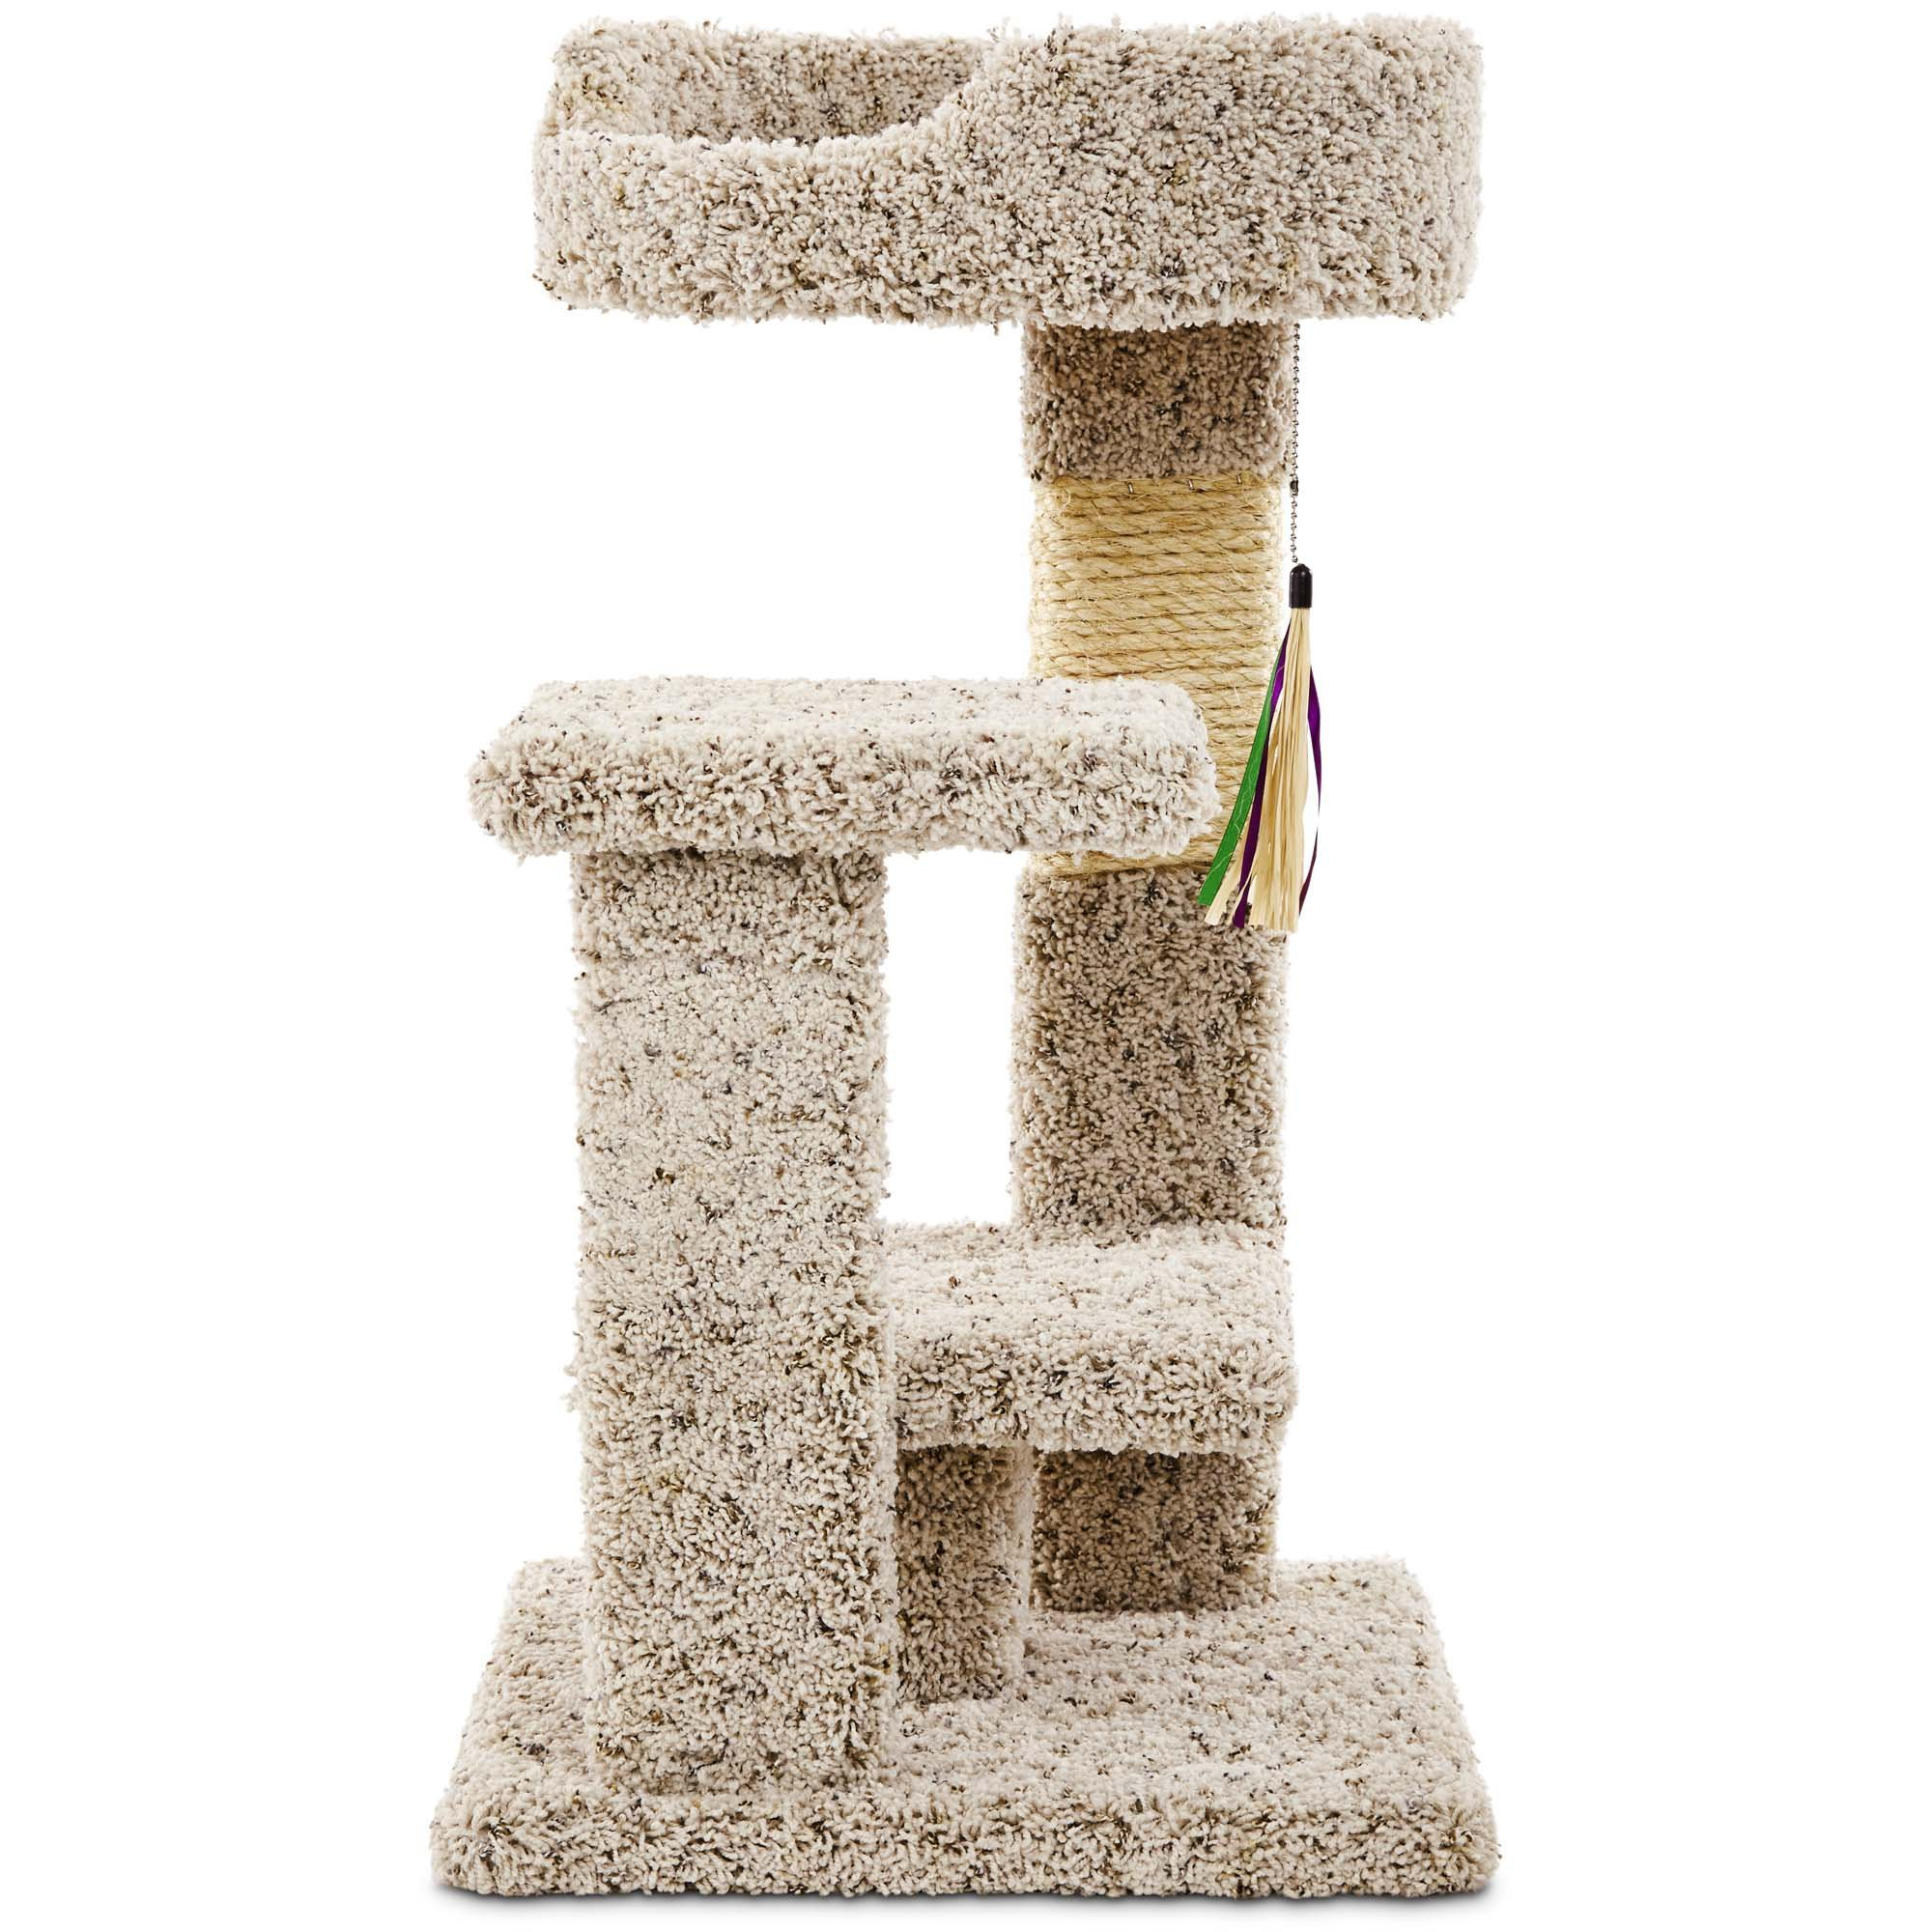 You & Me Kitty Play Yard with Toy, Regular, Off-White / Off-White